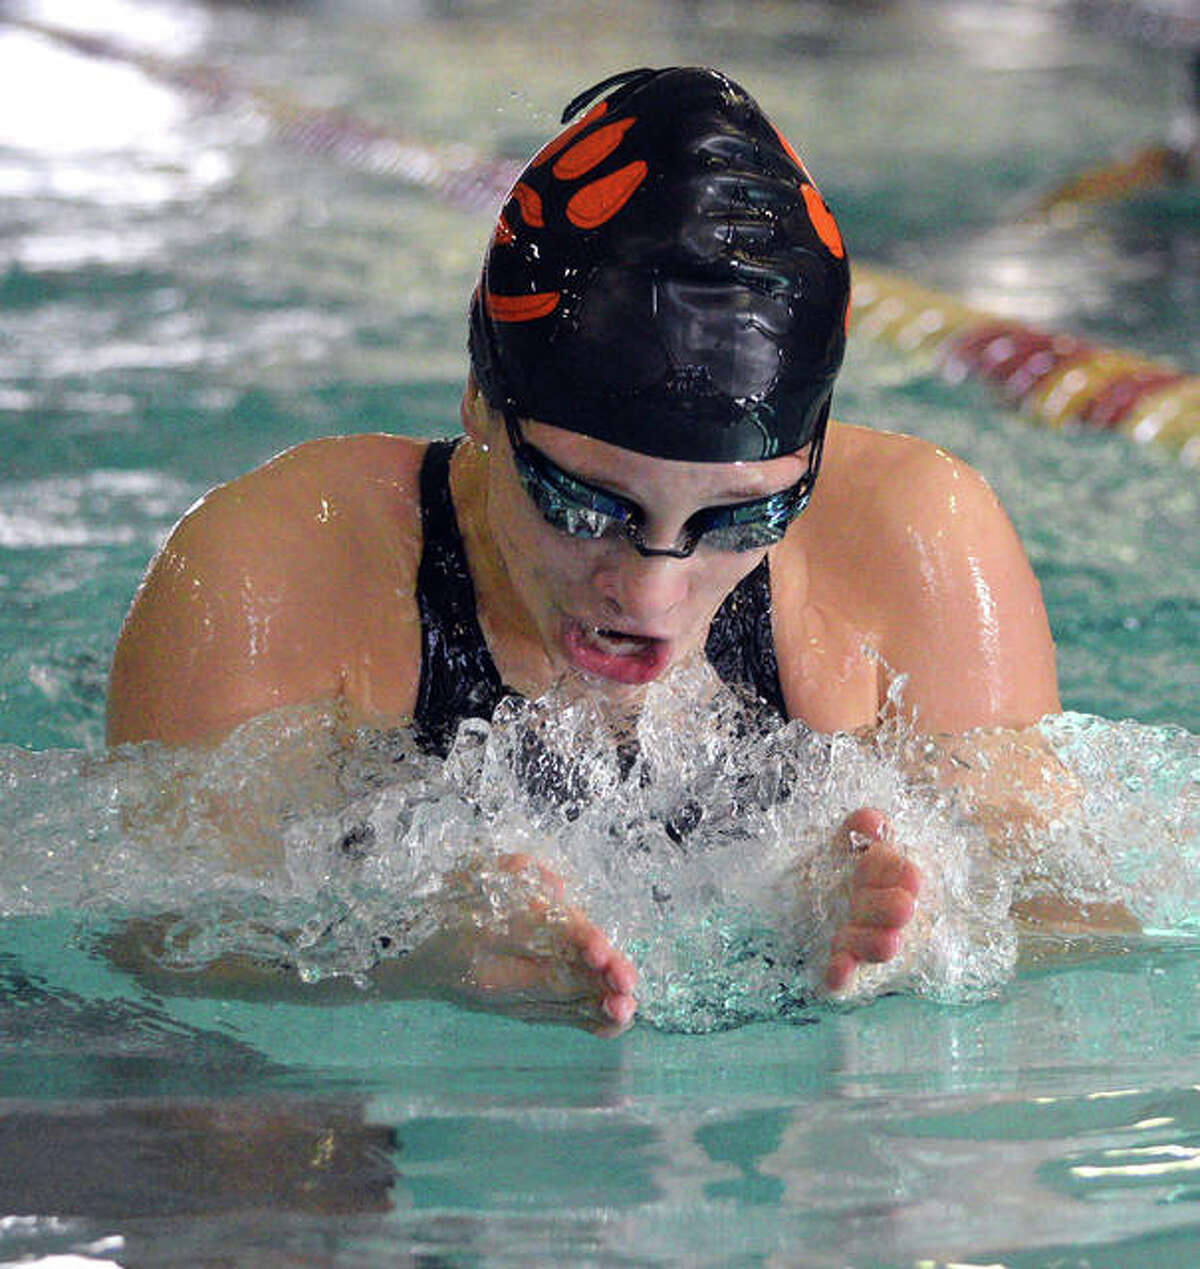 Phoebe Gremaud of Edwardsville was a double winner in Thursday's 76-49 win over O'Fallon. She won the 200-yard individual medley in a time of 2:15.36 and won the 100-yard backstroke in 1:00.59.